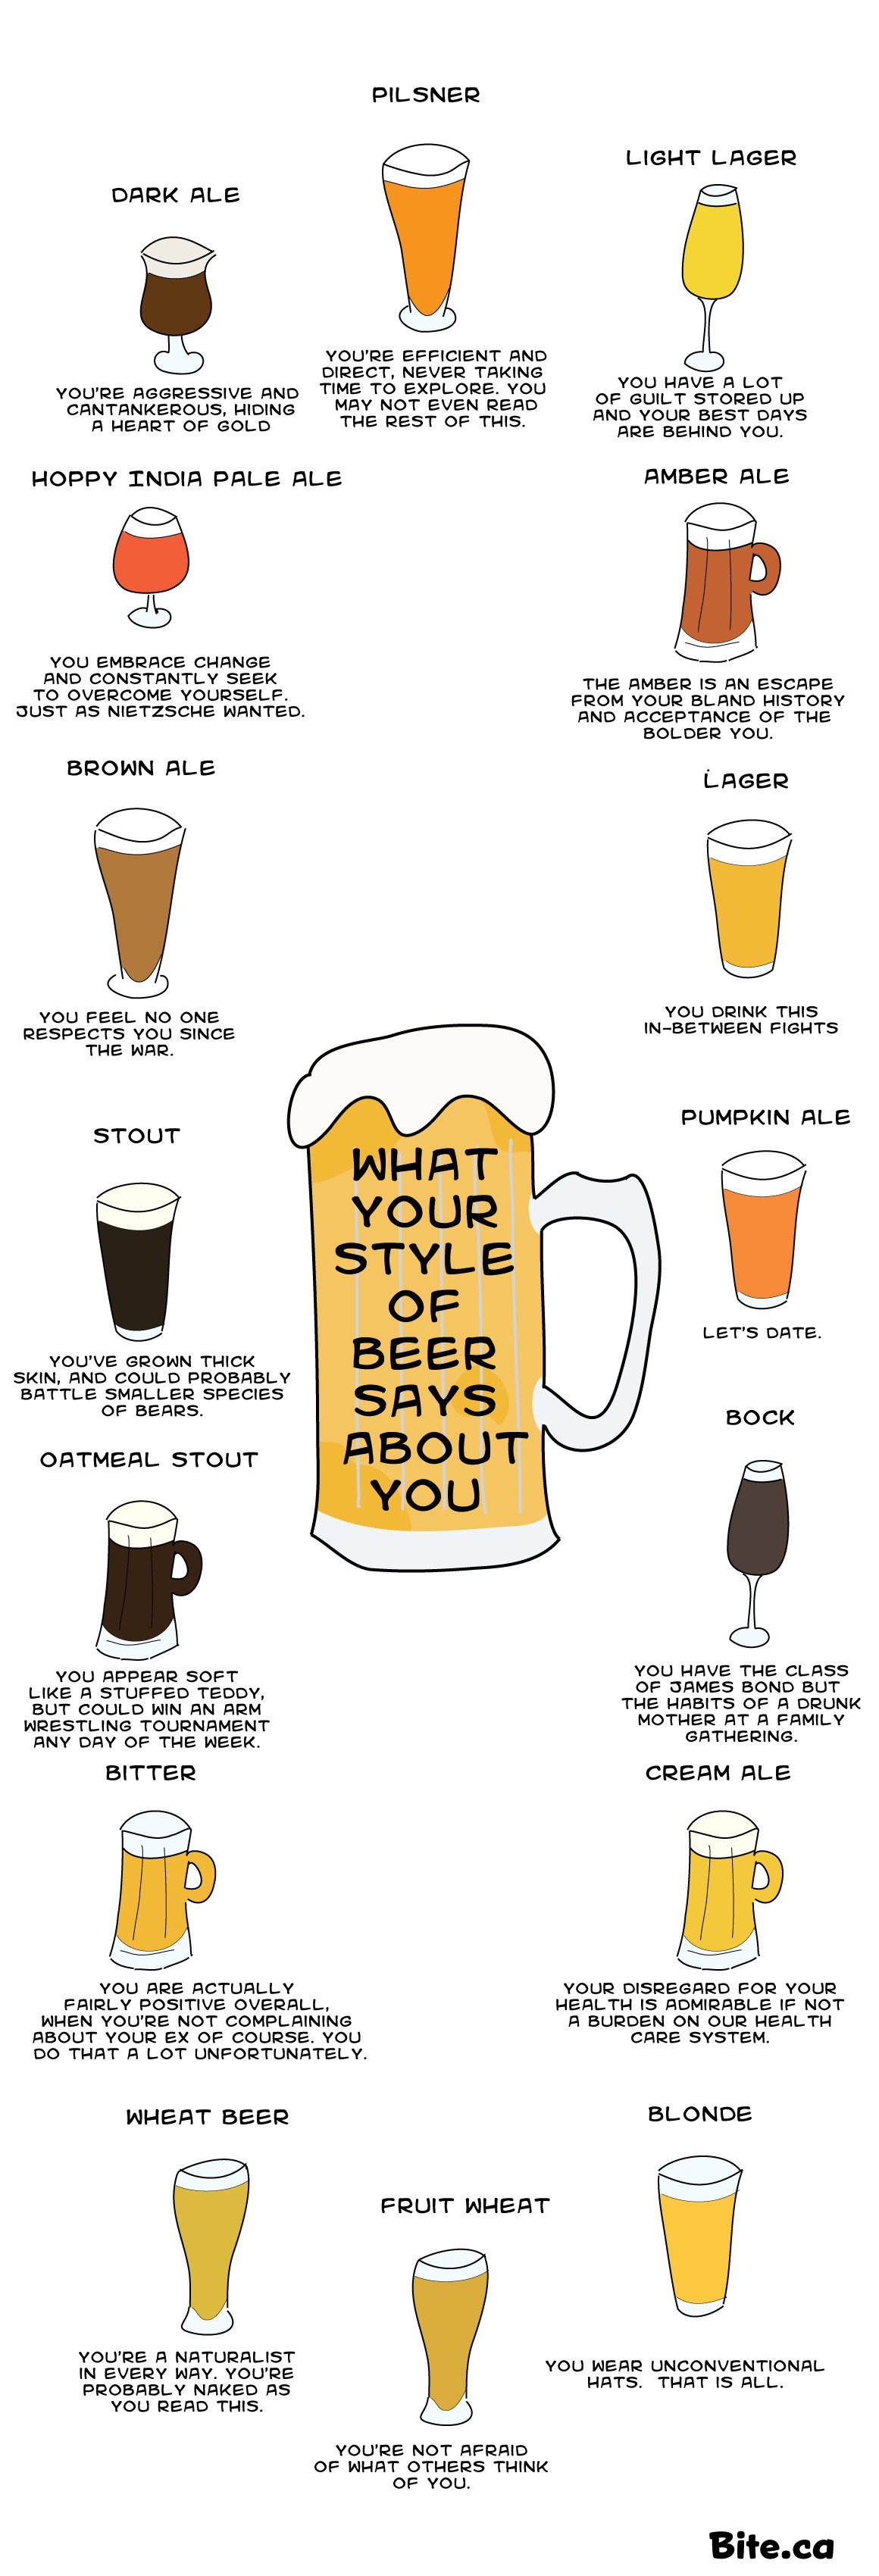 what-your-beer-says-about-you_524f2c1176b2f